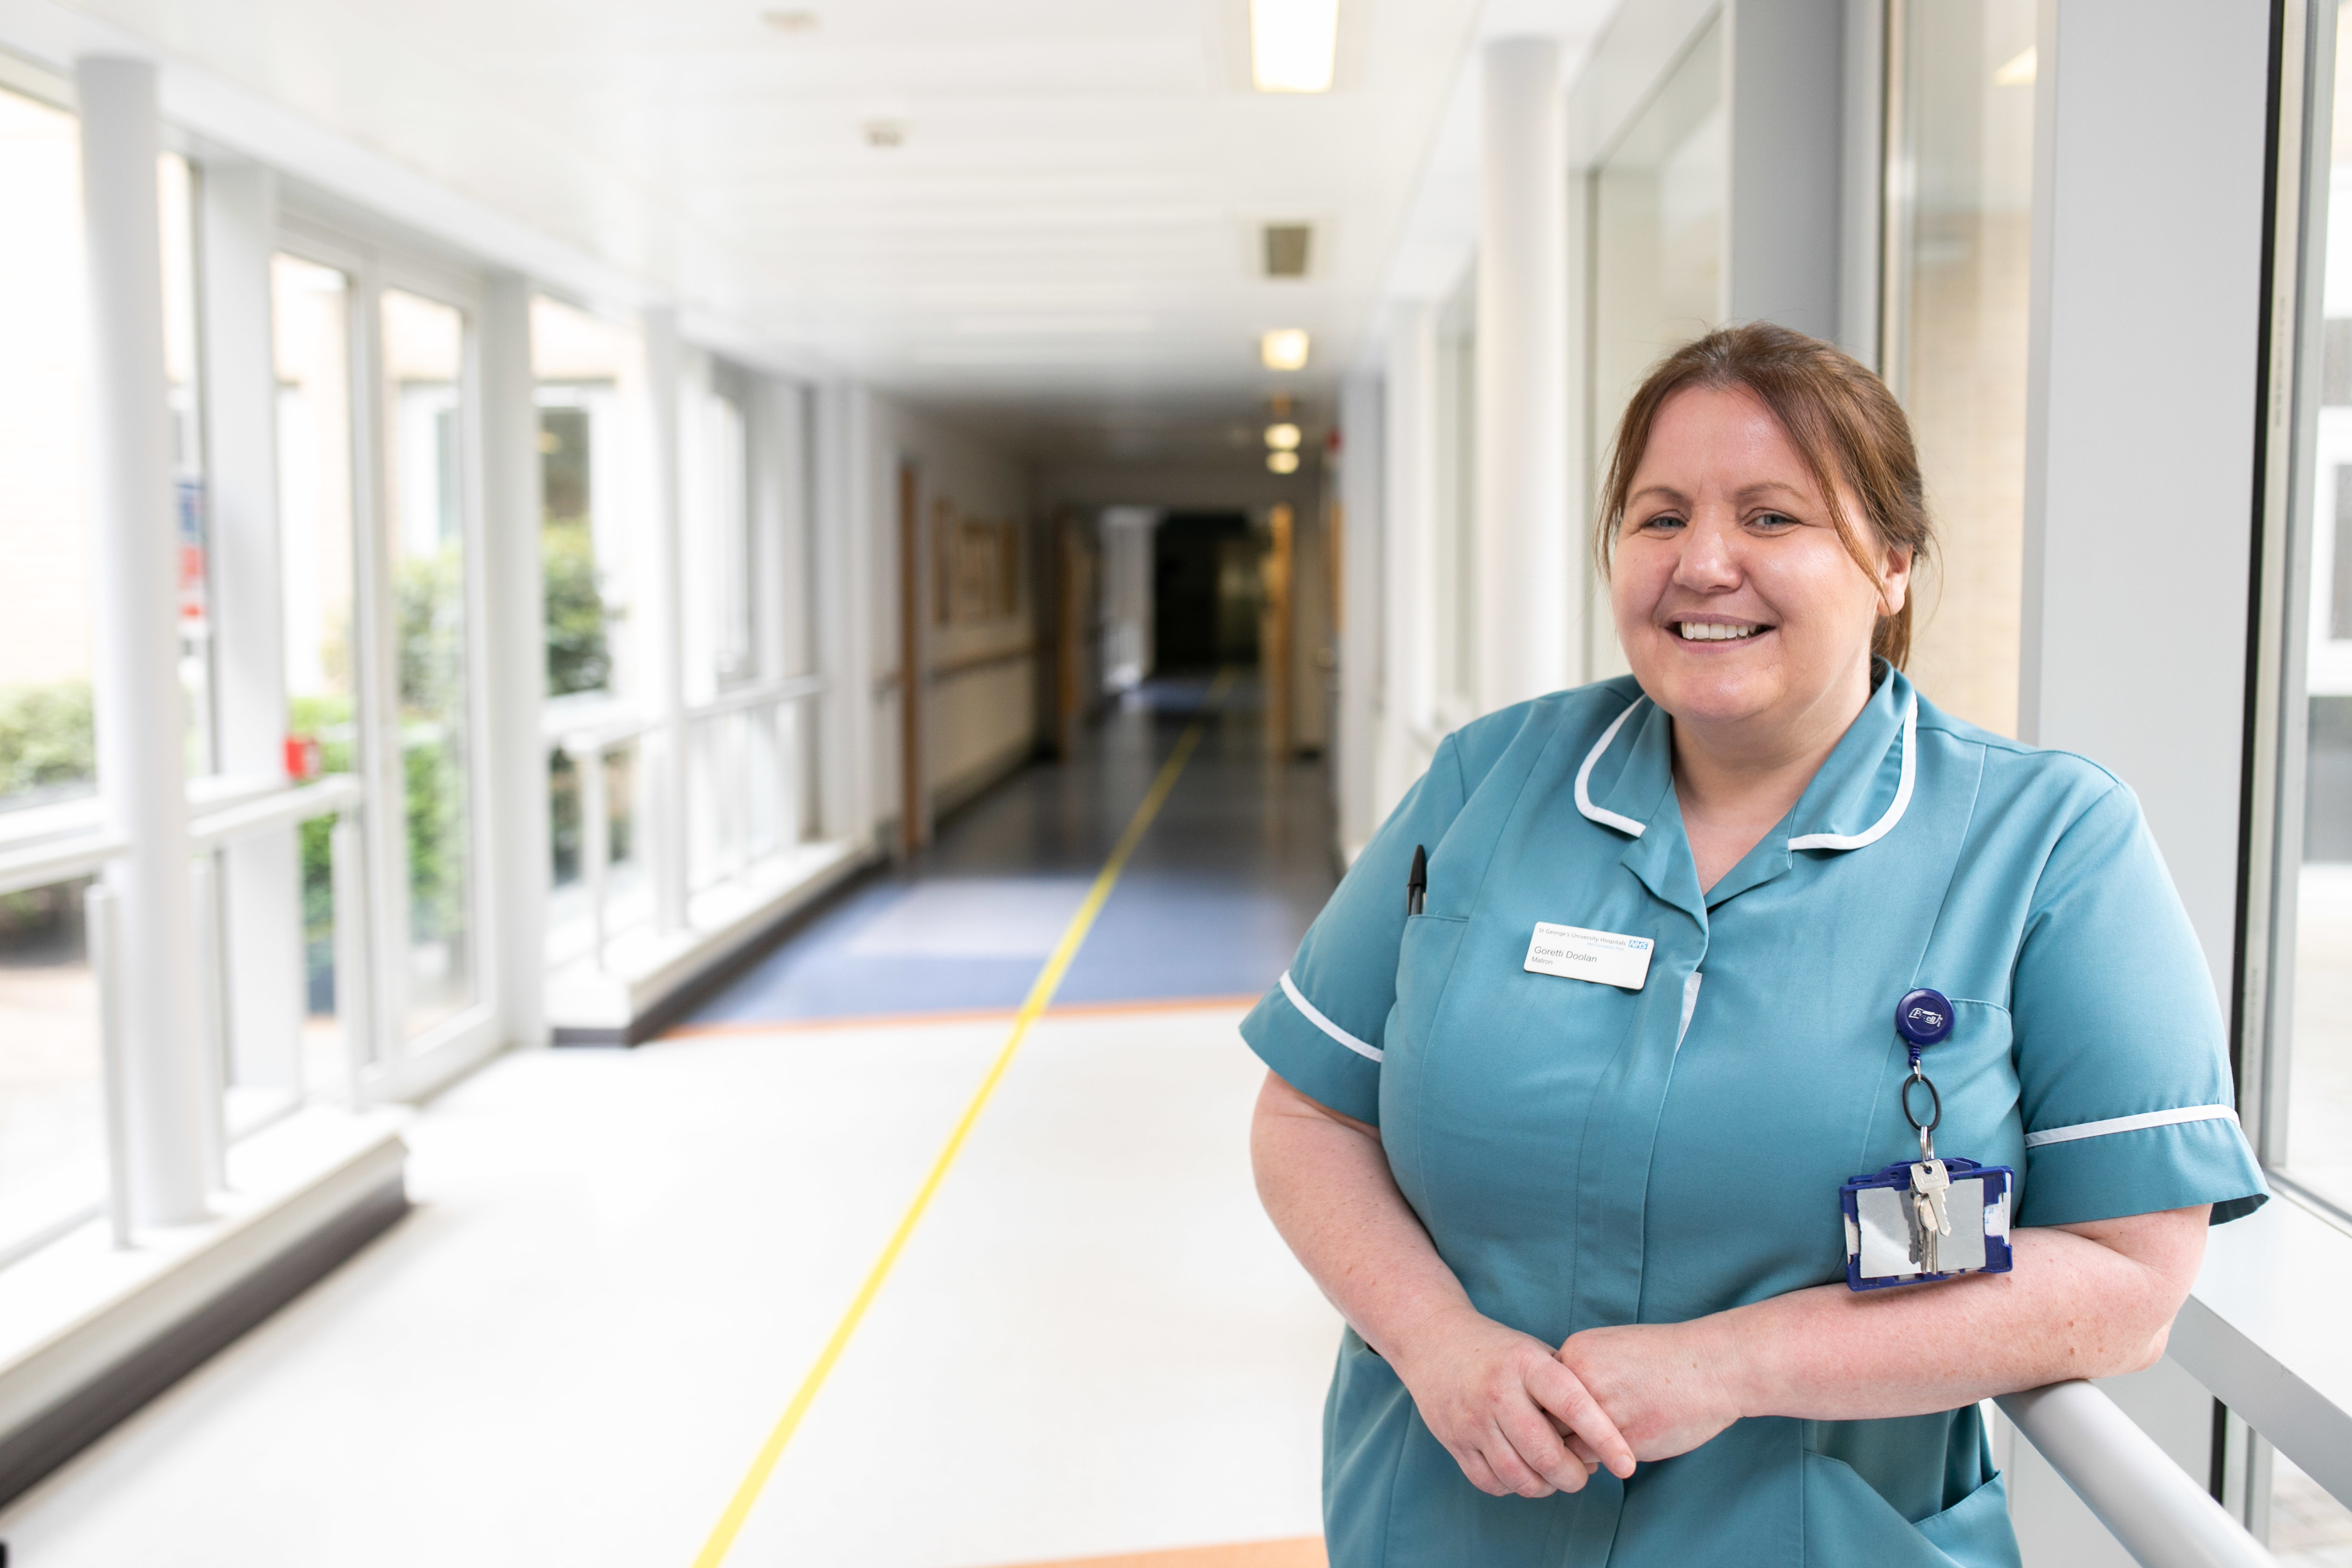 Nurse stood in a hospital smiling at the camera